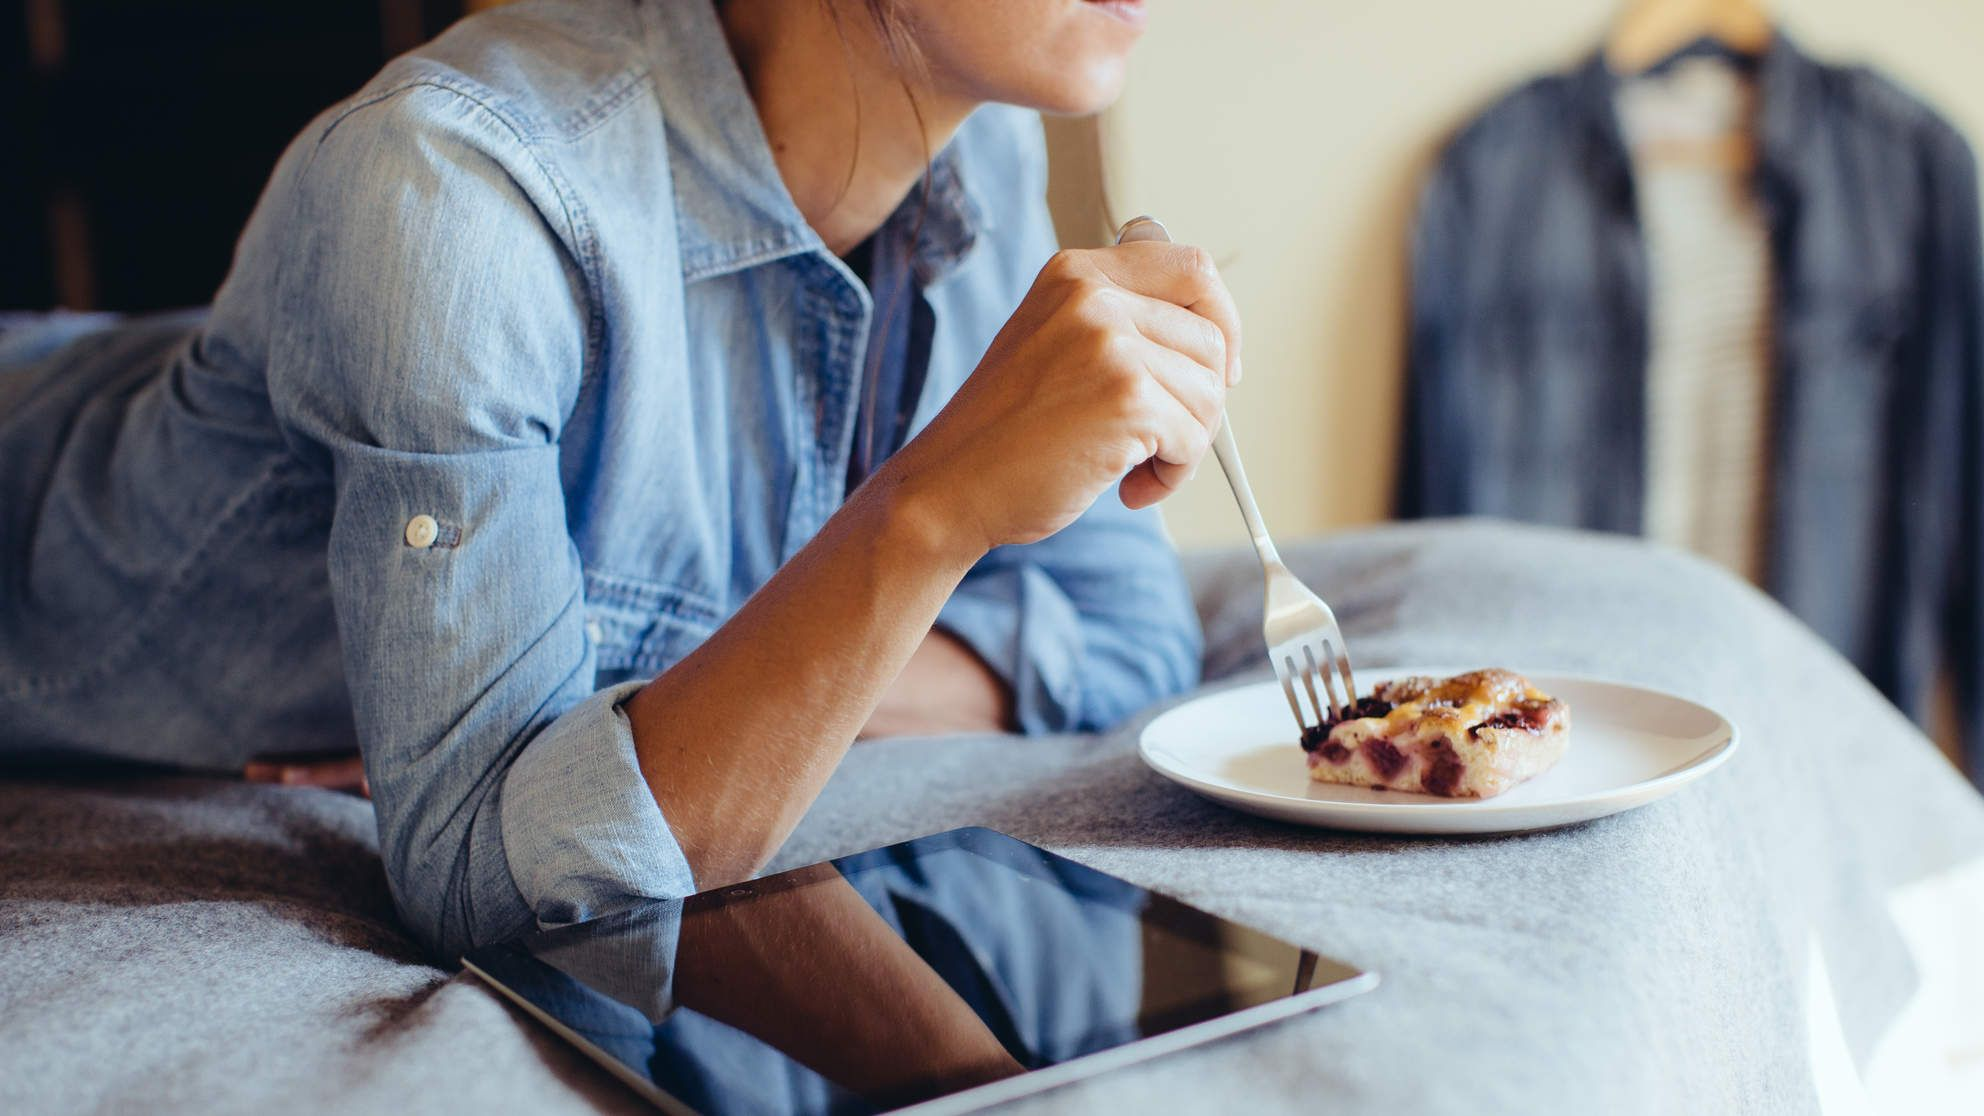 Anxiety causes emotional eating